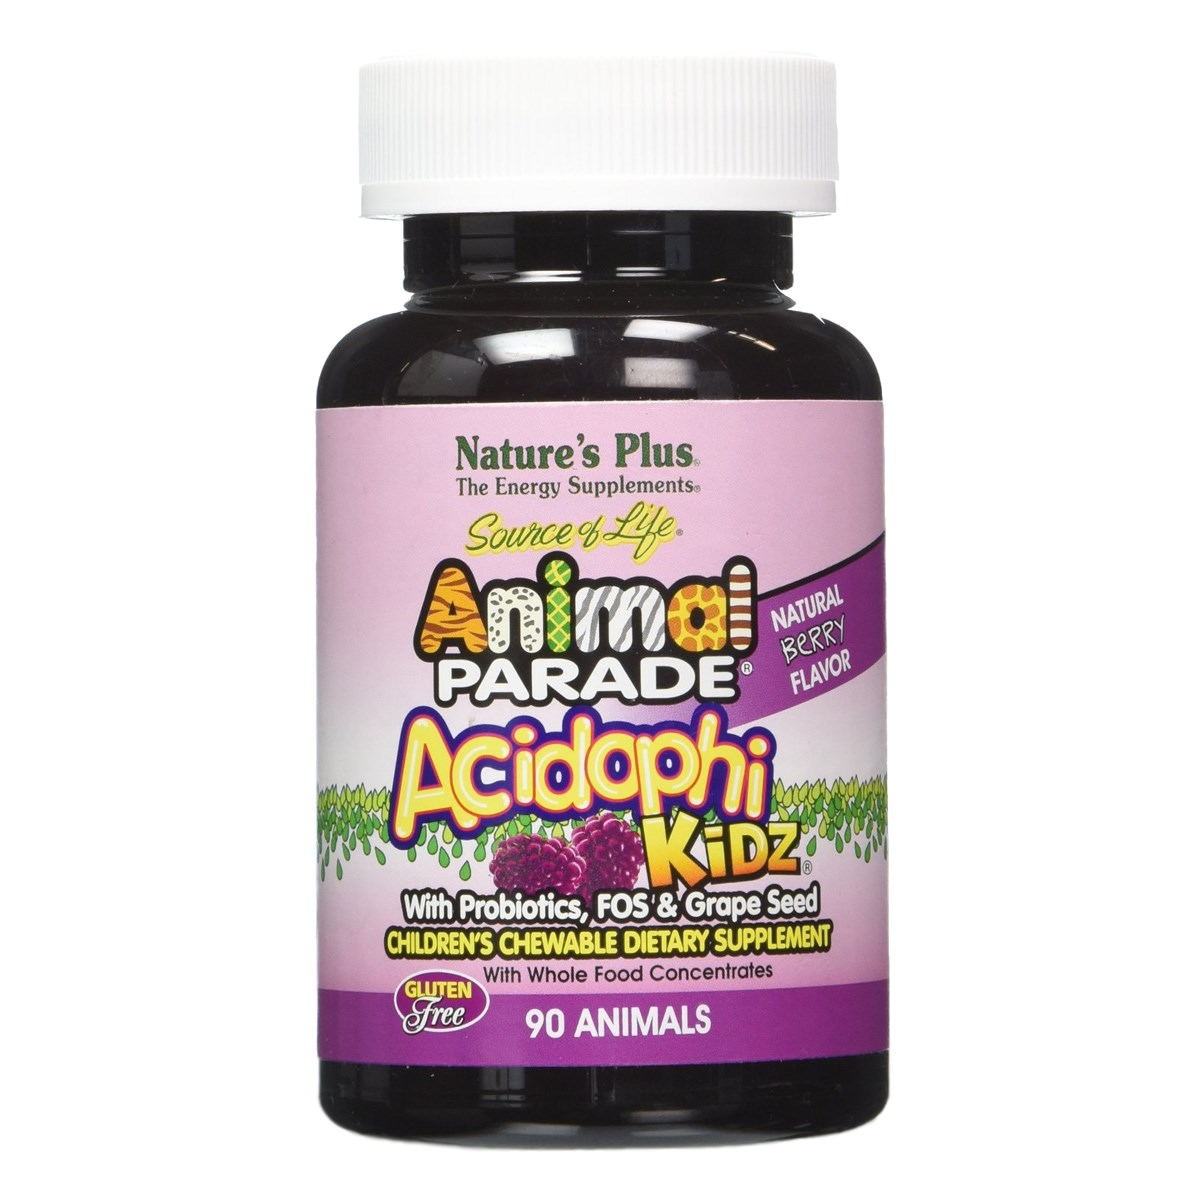 Natures Plus Animal Parade AcidophiKidz Children's Chewable with Probiotics and FOS